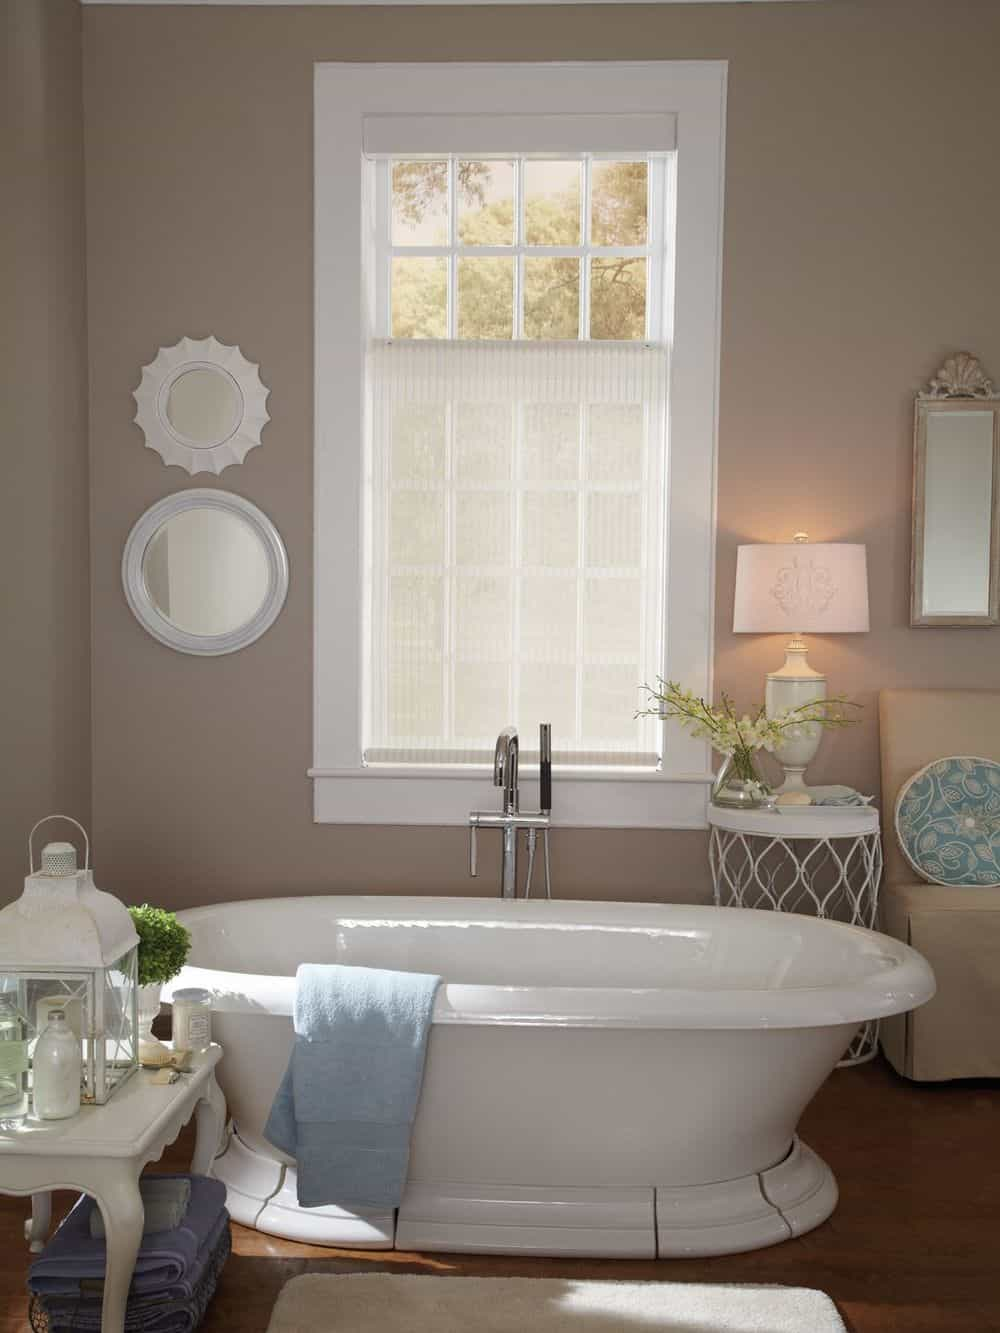 A primary bathroom featuring a freestanding tub and a side table with a charming table lamp, along with a window with a lovely window shade.